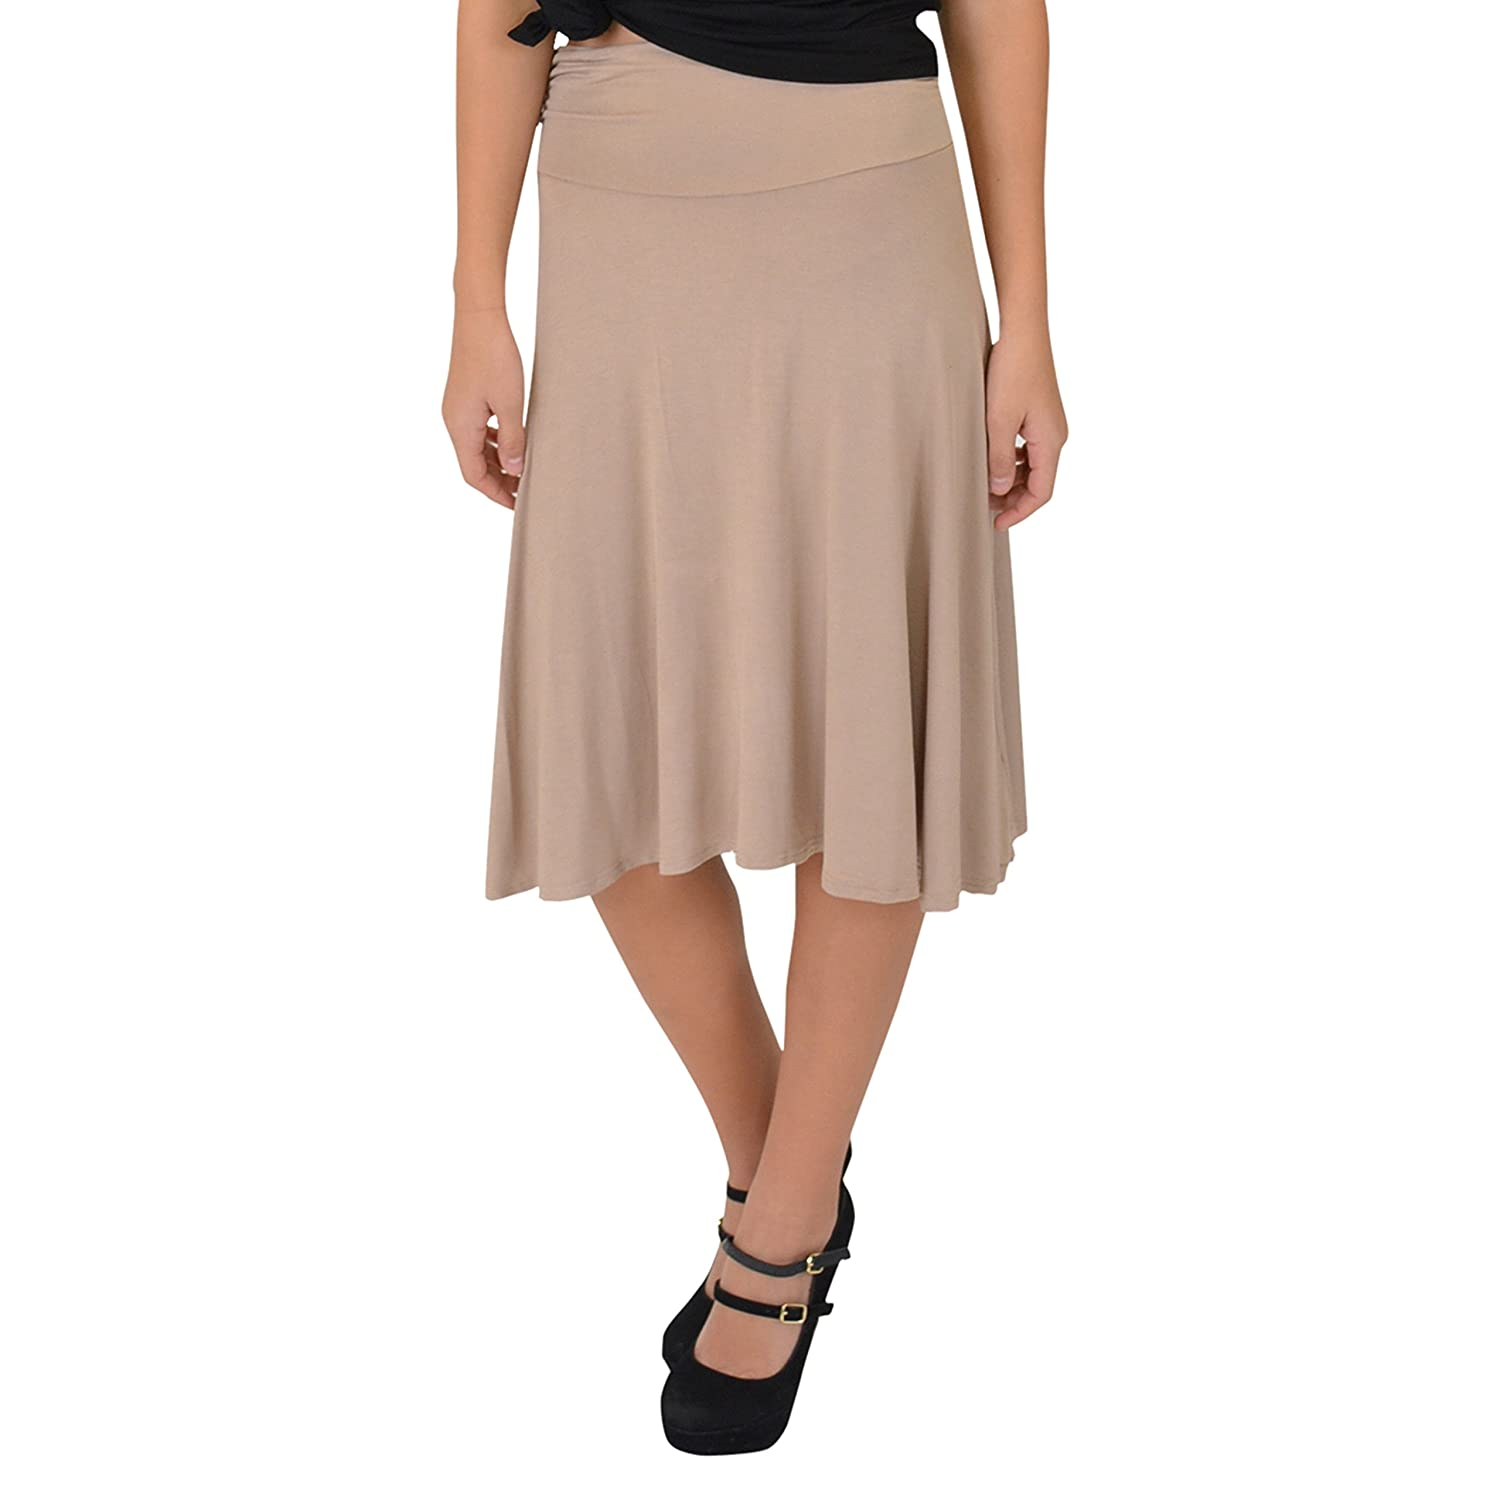 42f08937a66d6 Stretch is Comfort Women s Knee Length Flowy Skirt at Amazon Women s  Clothing store